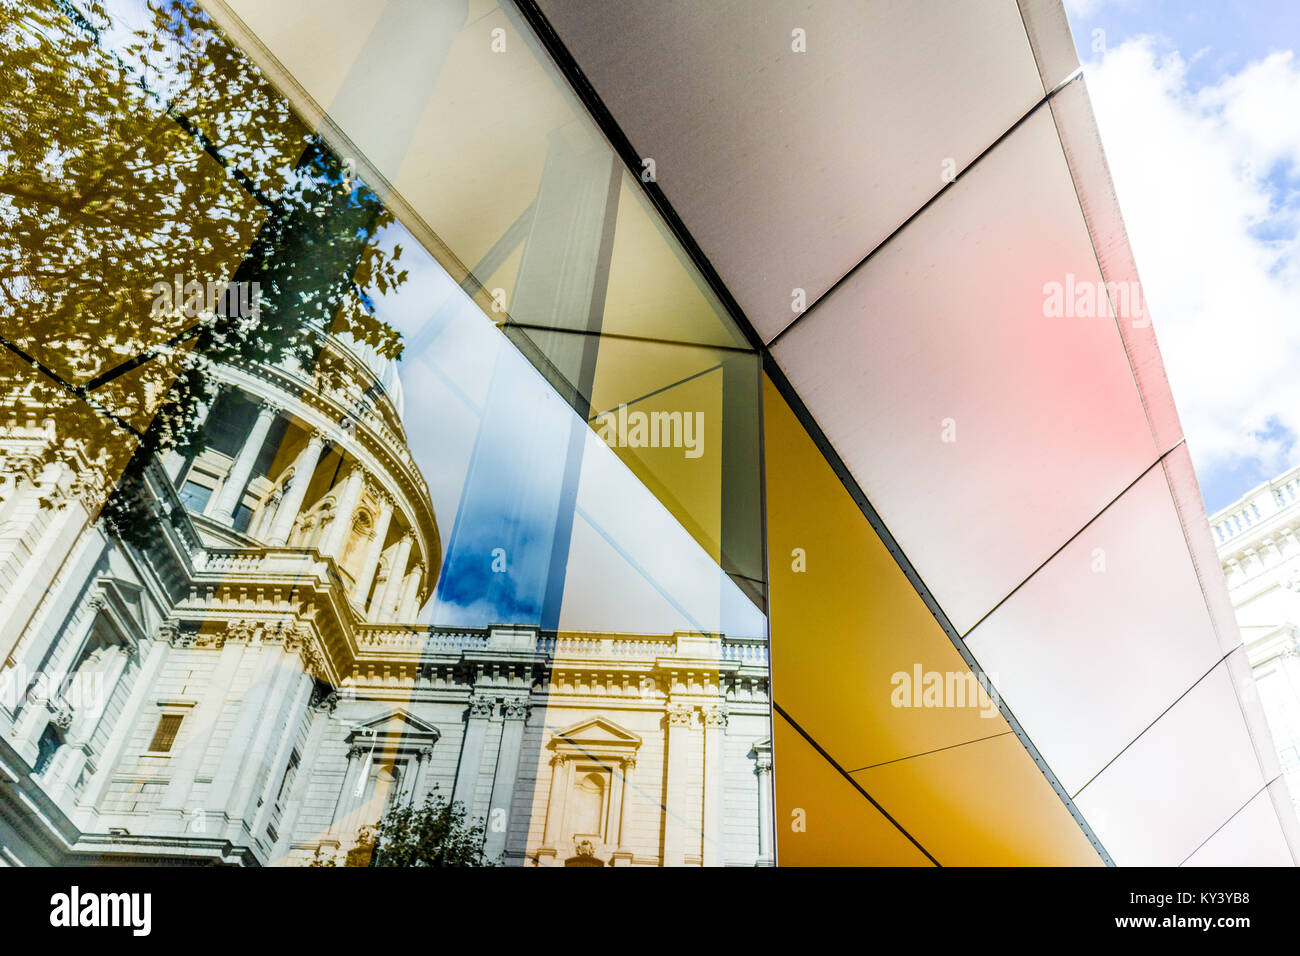 Amazing reflection of St Paul's Cathedral, London. Stock Photo